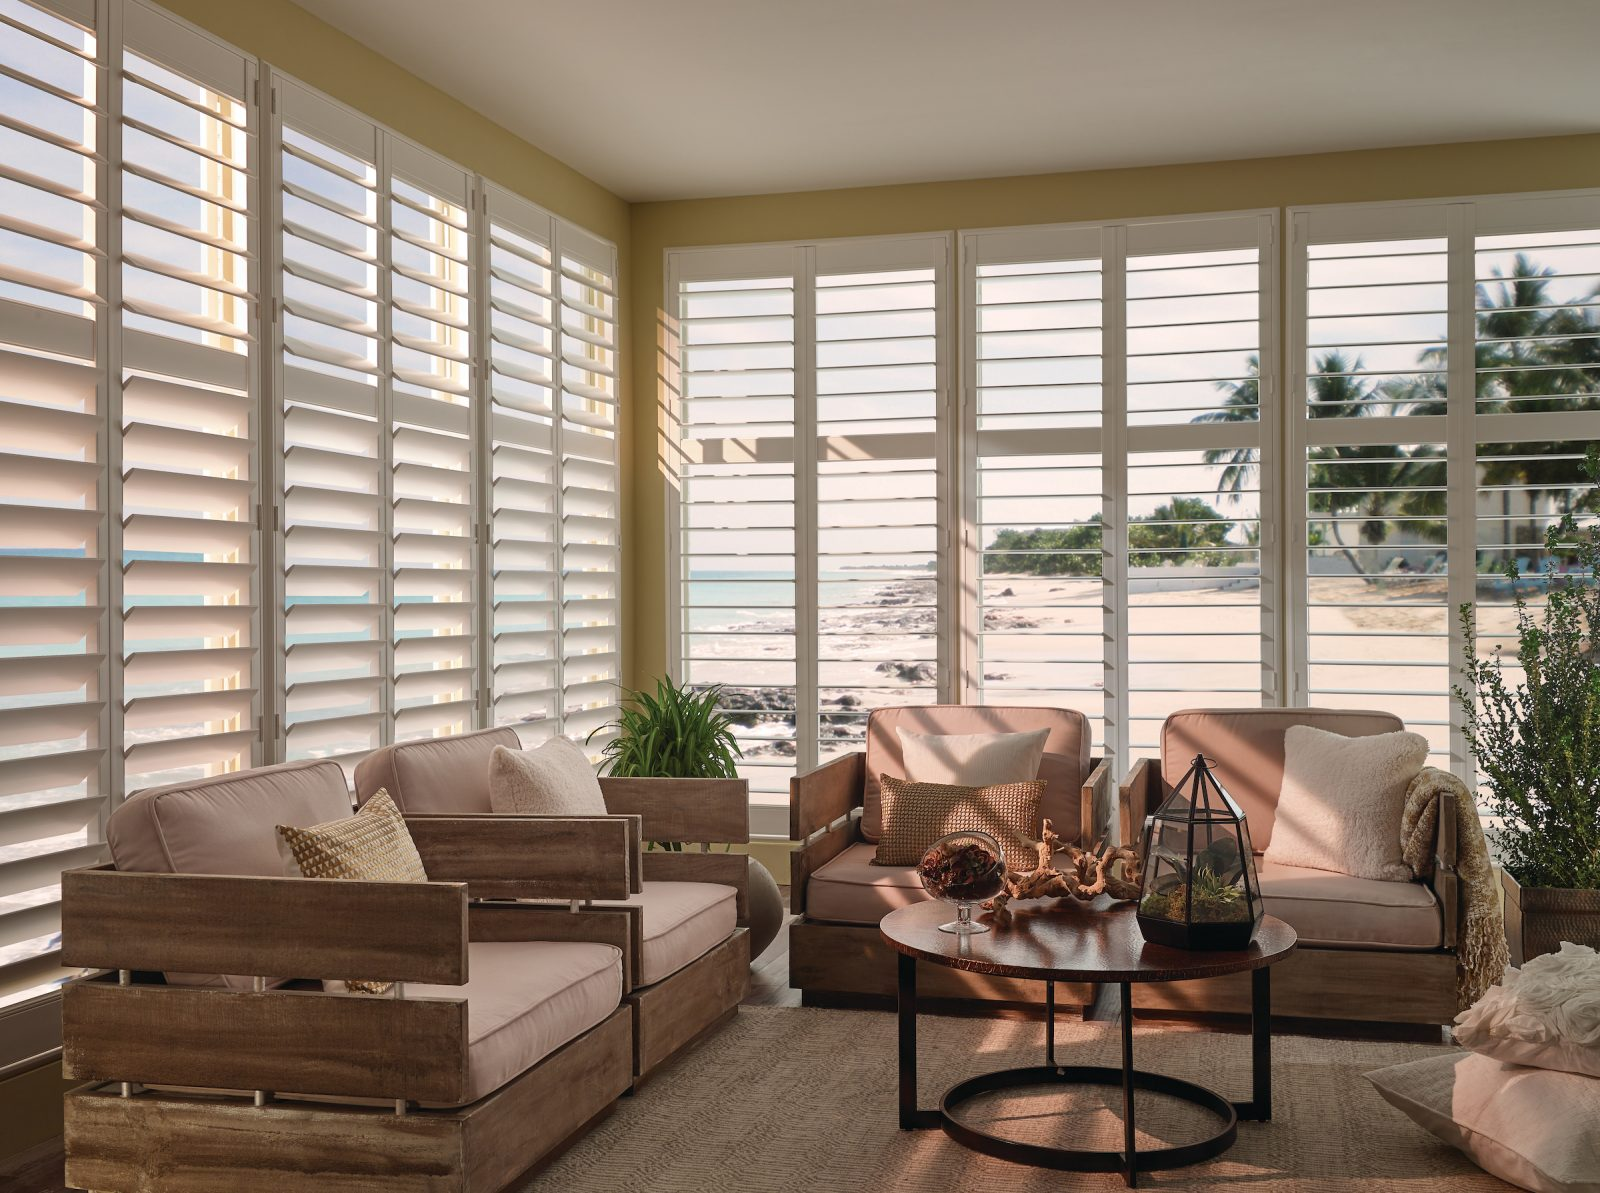 Home Decor Essentials for Winter including Wooden Shutters